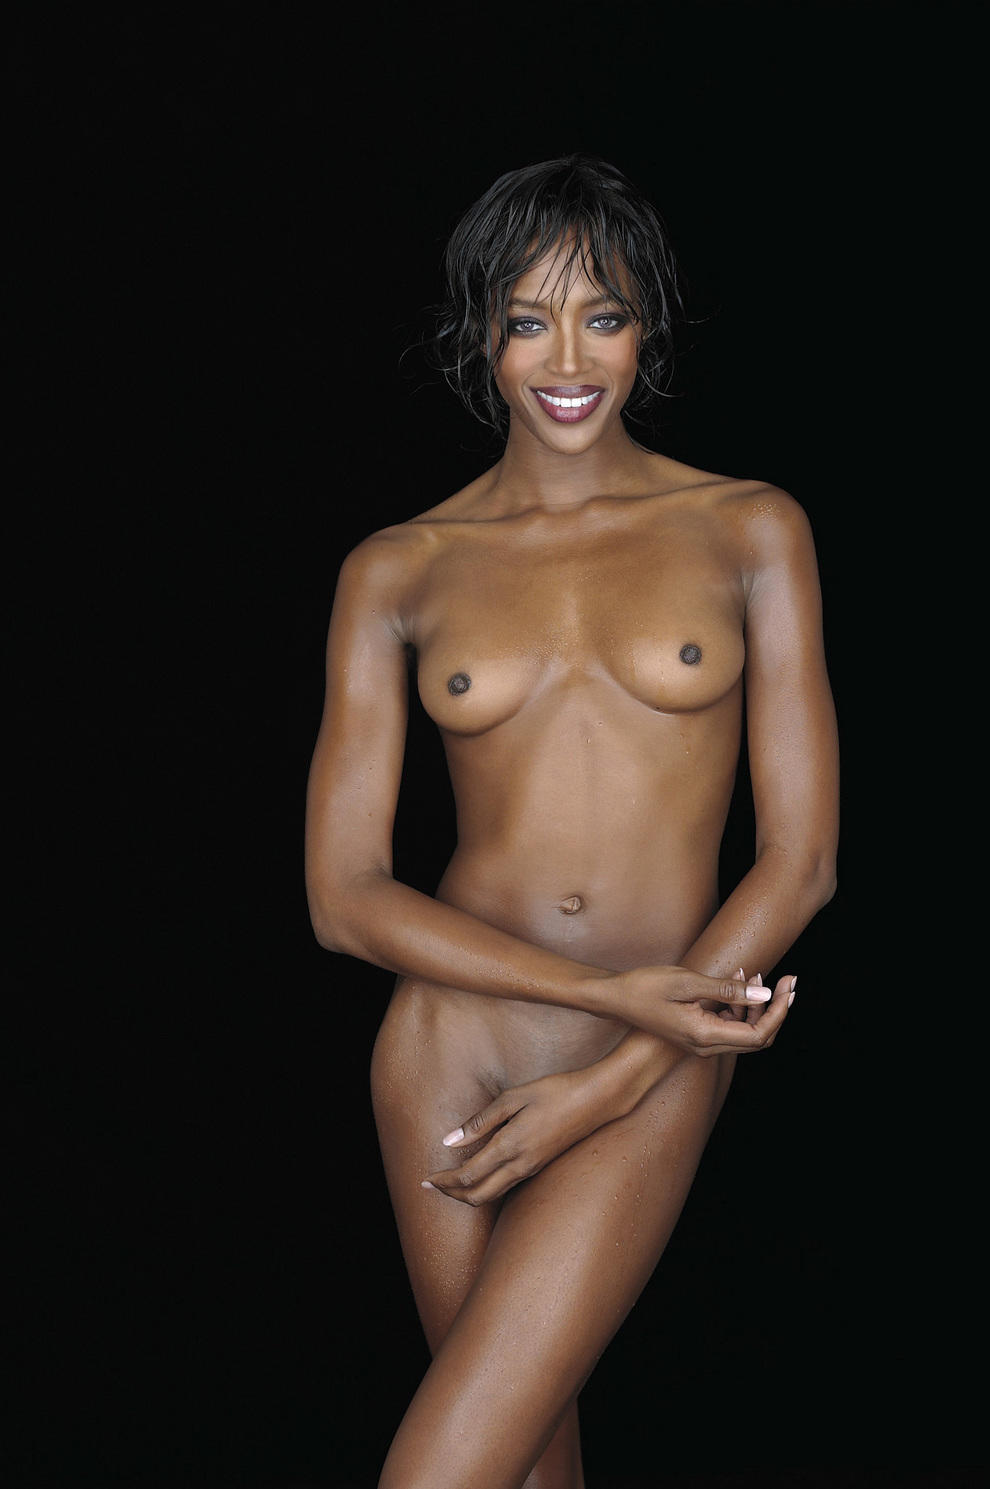 https://pictures.platinum-celebs.com/naomi-campbell-nude-photo.jpg